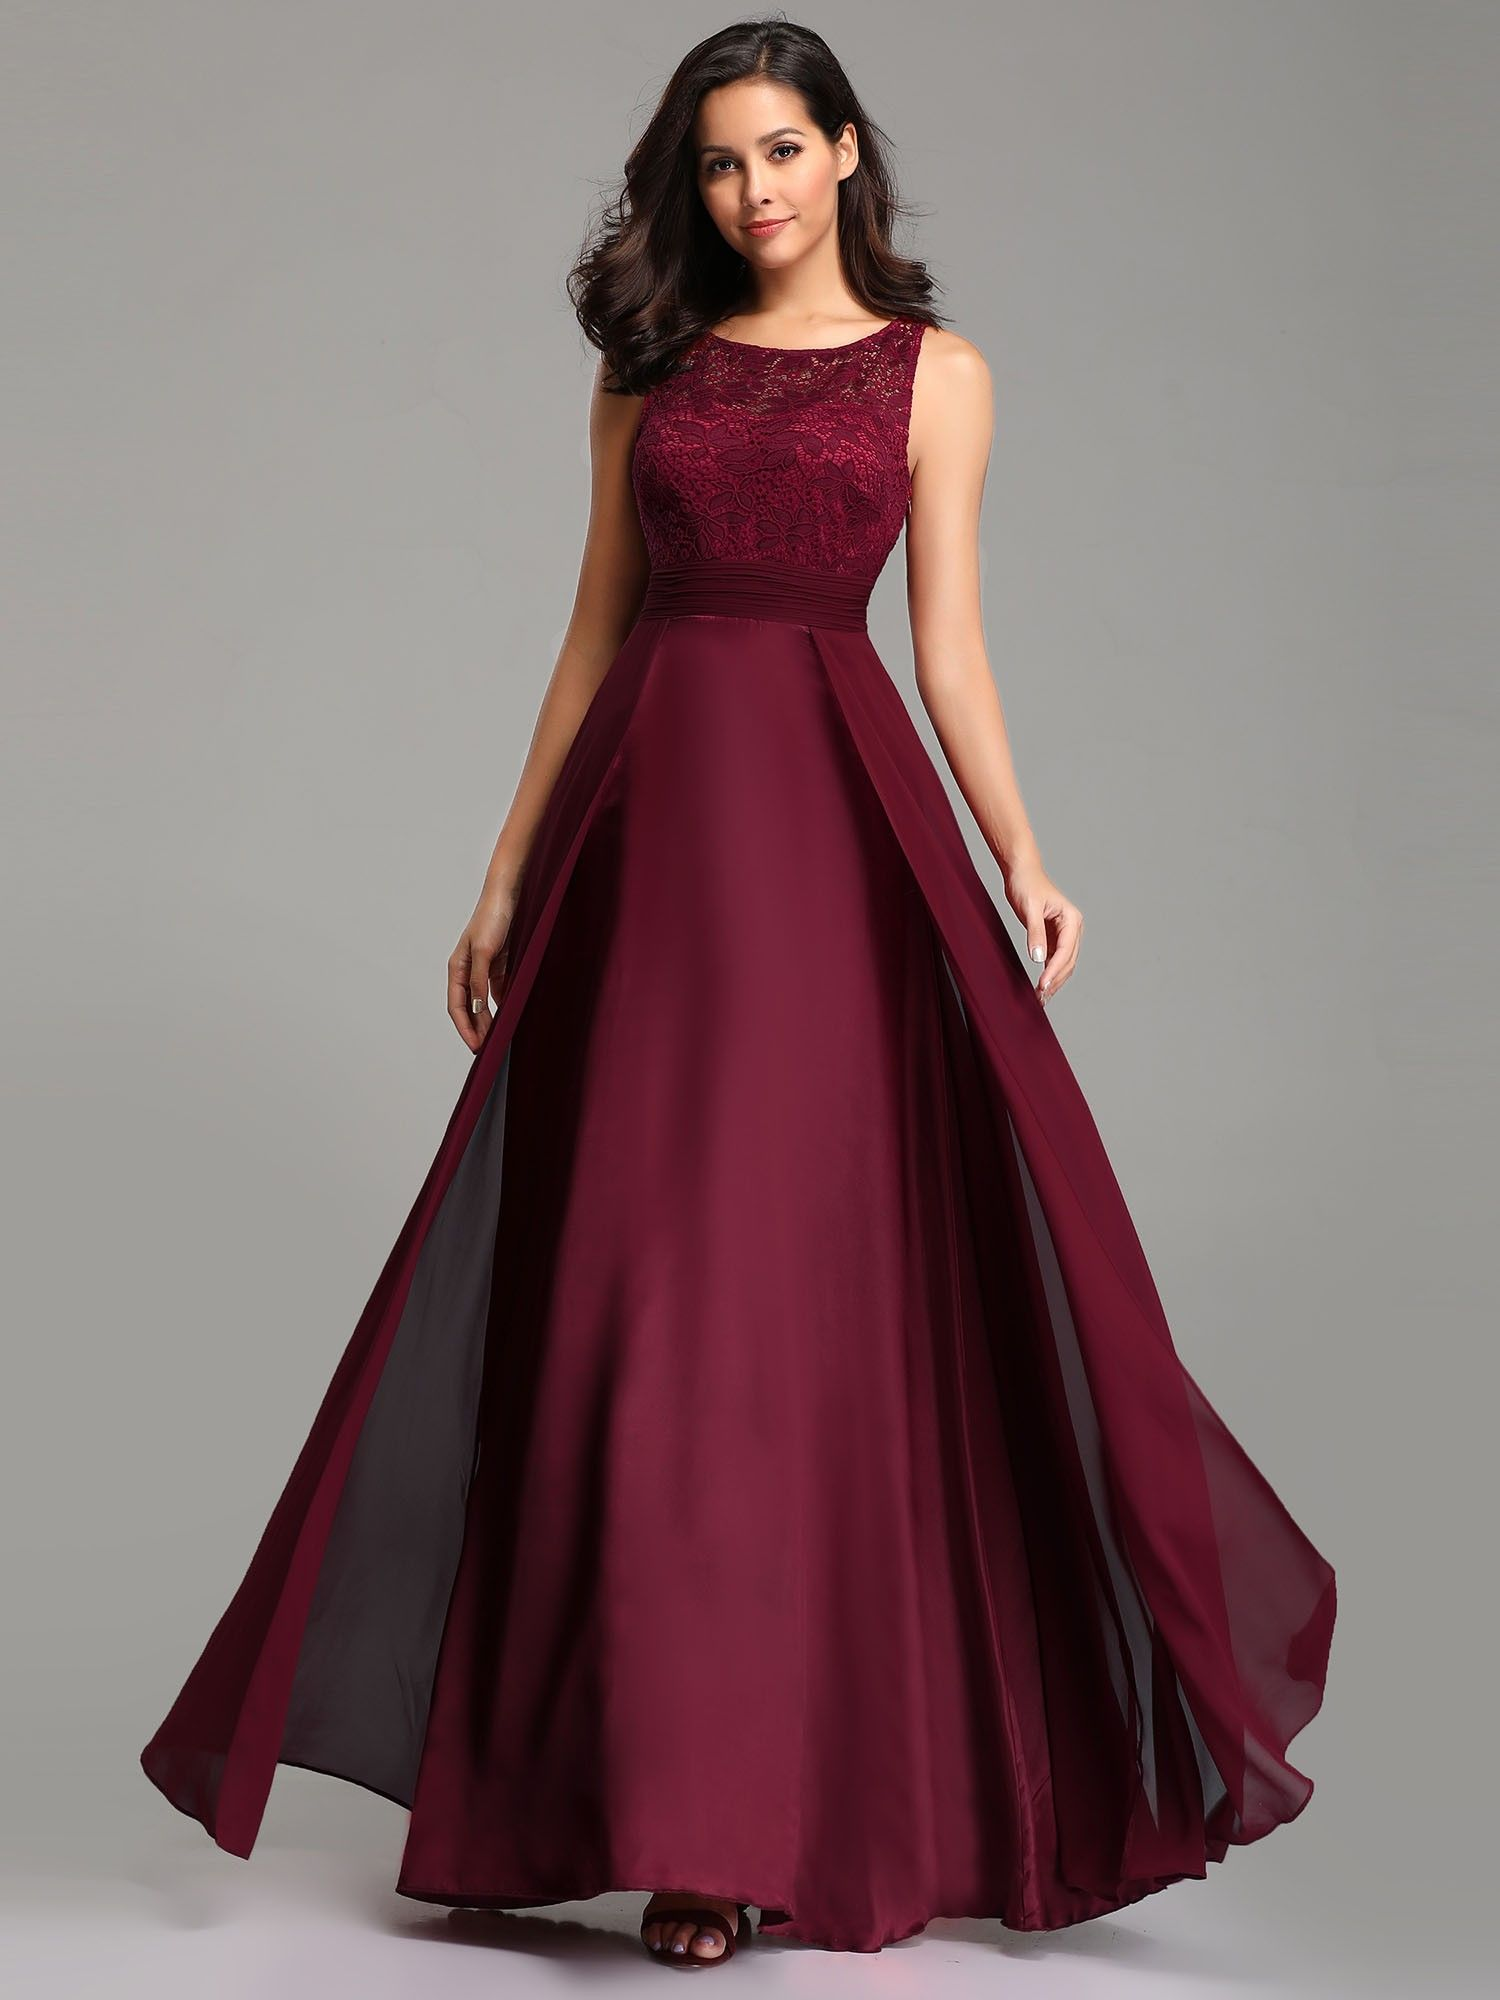 US Ever-Pretty Long Burgundy Lace O neck Illusion Formal Dress Prom Dress Gowns